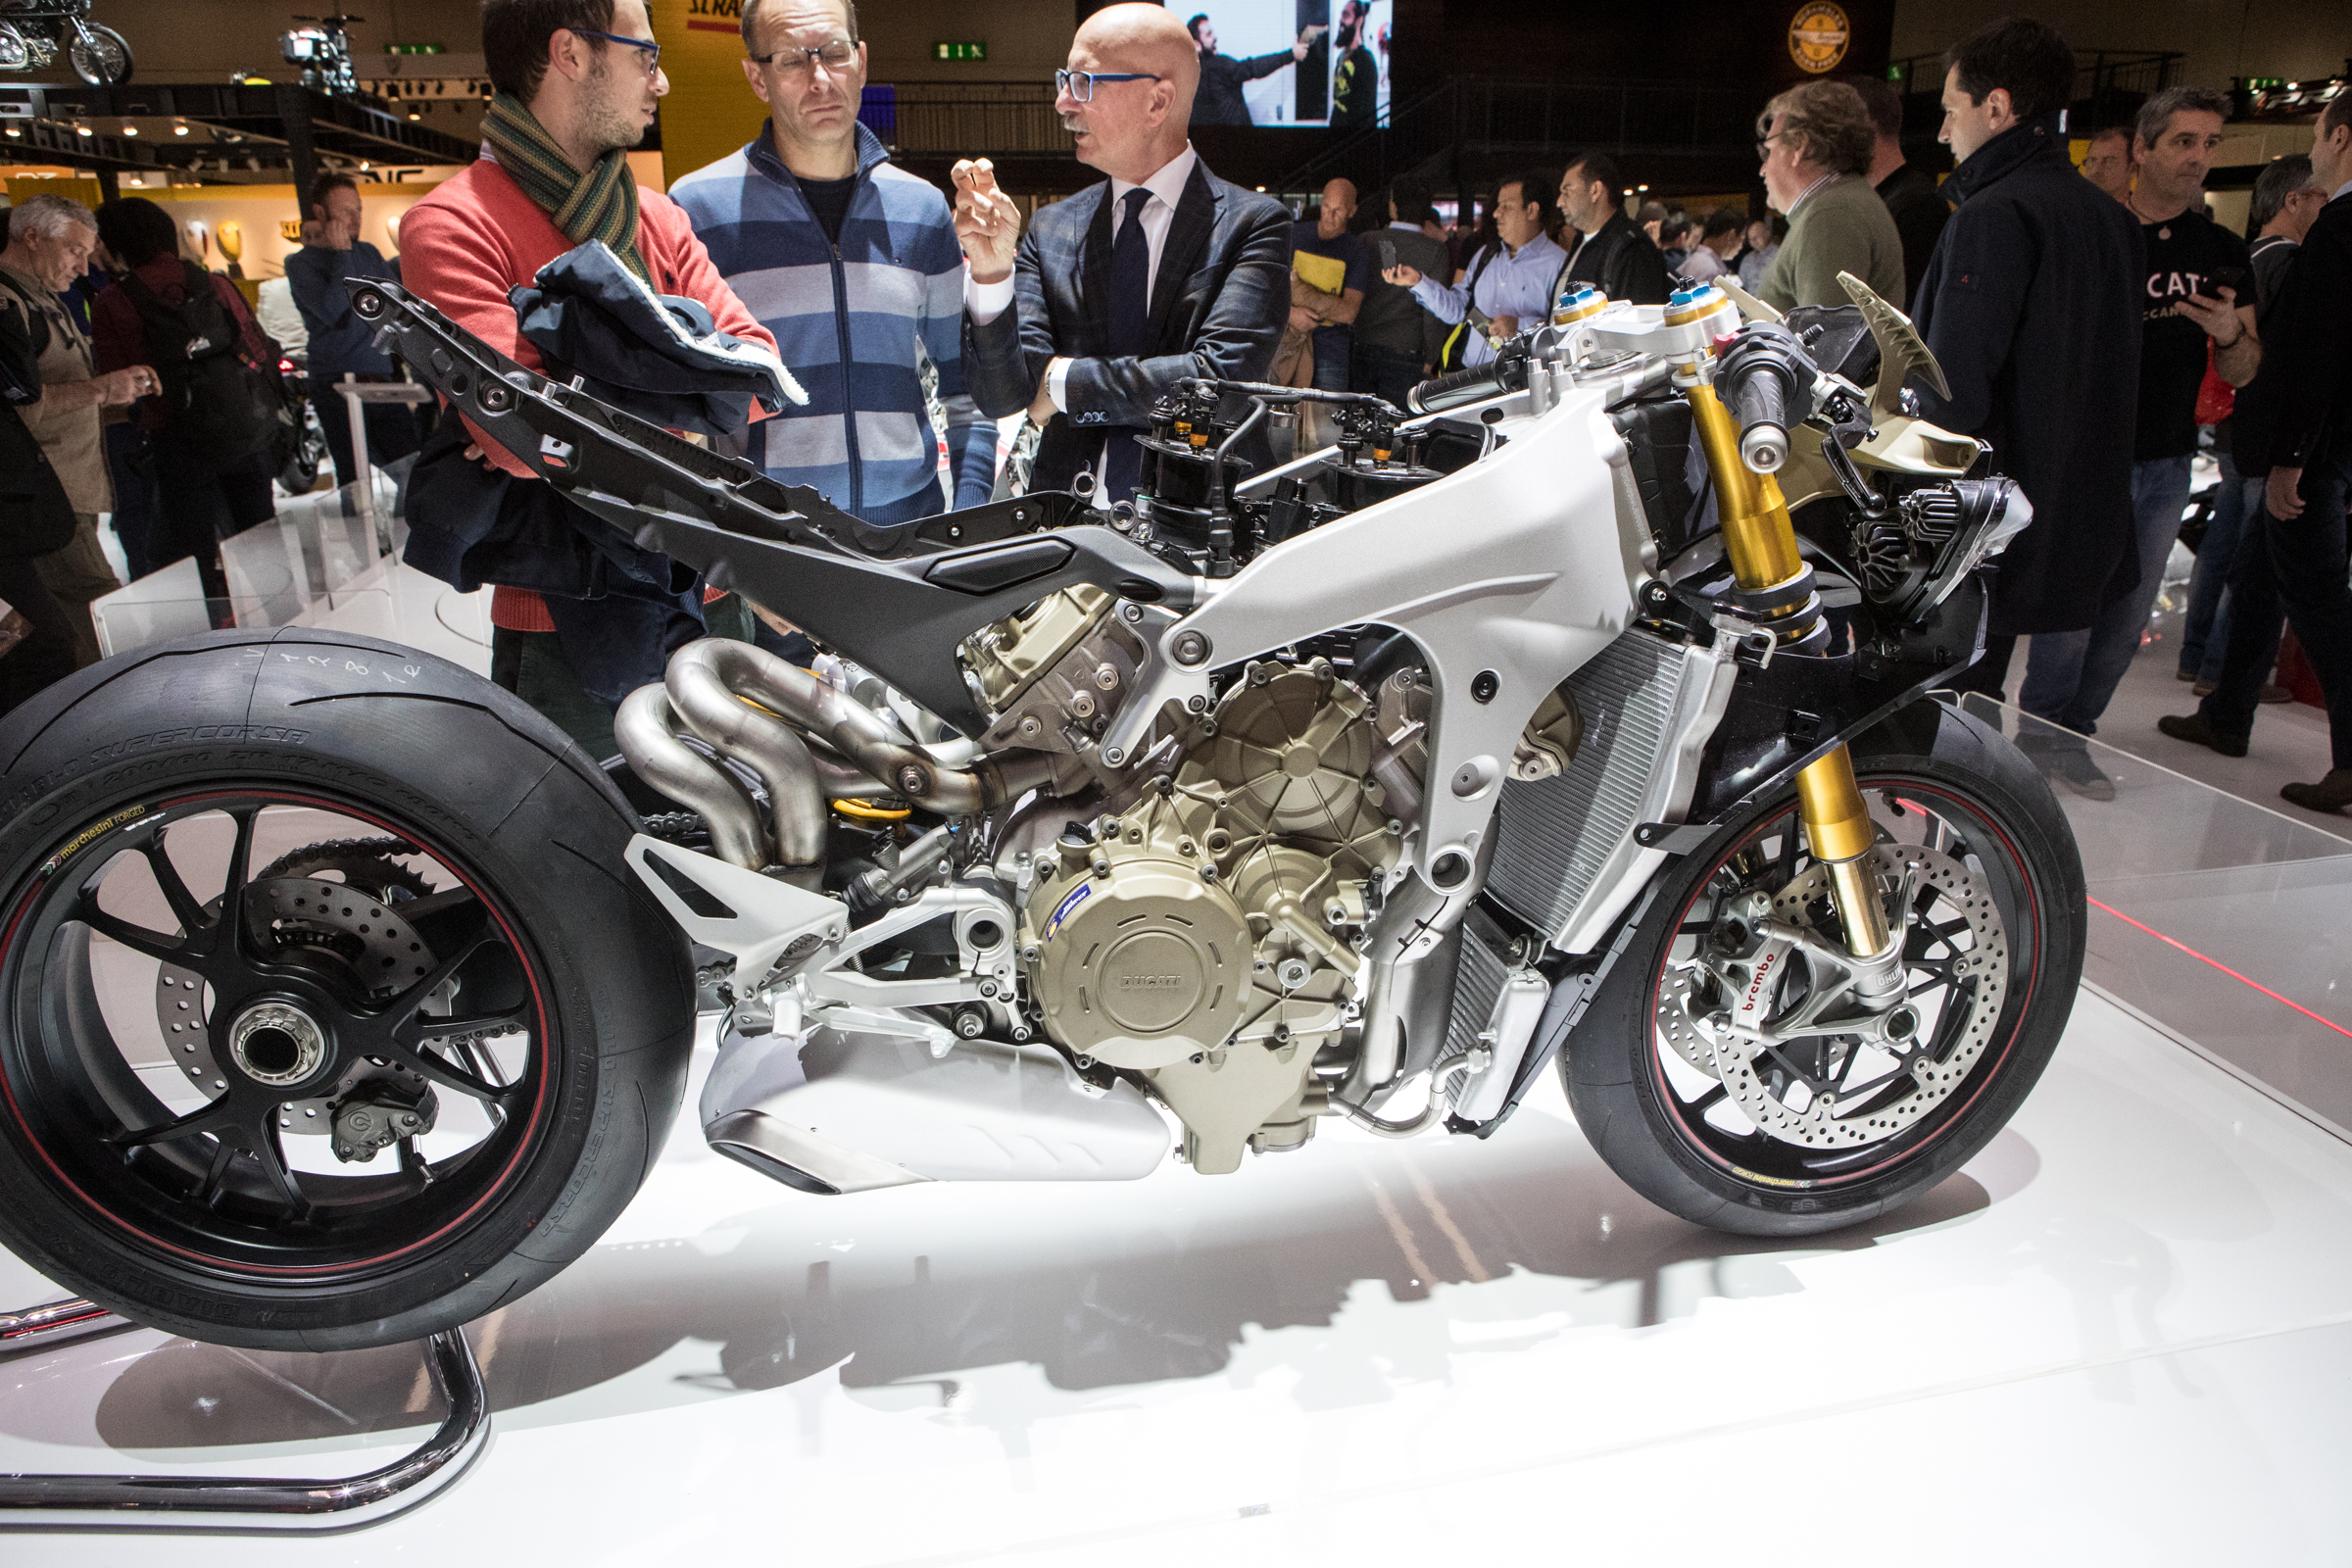 The stripped down Ducati V4 Panigale.